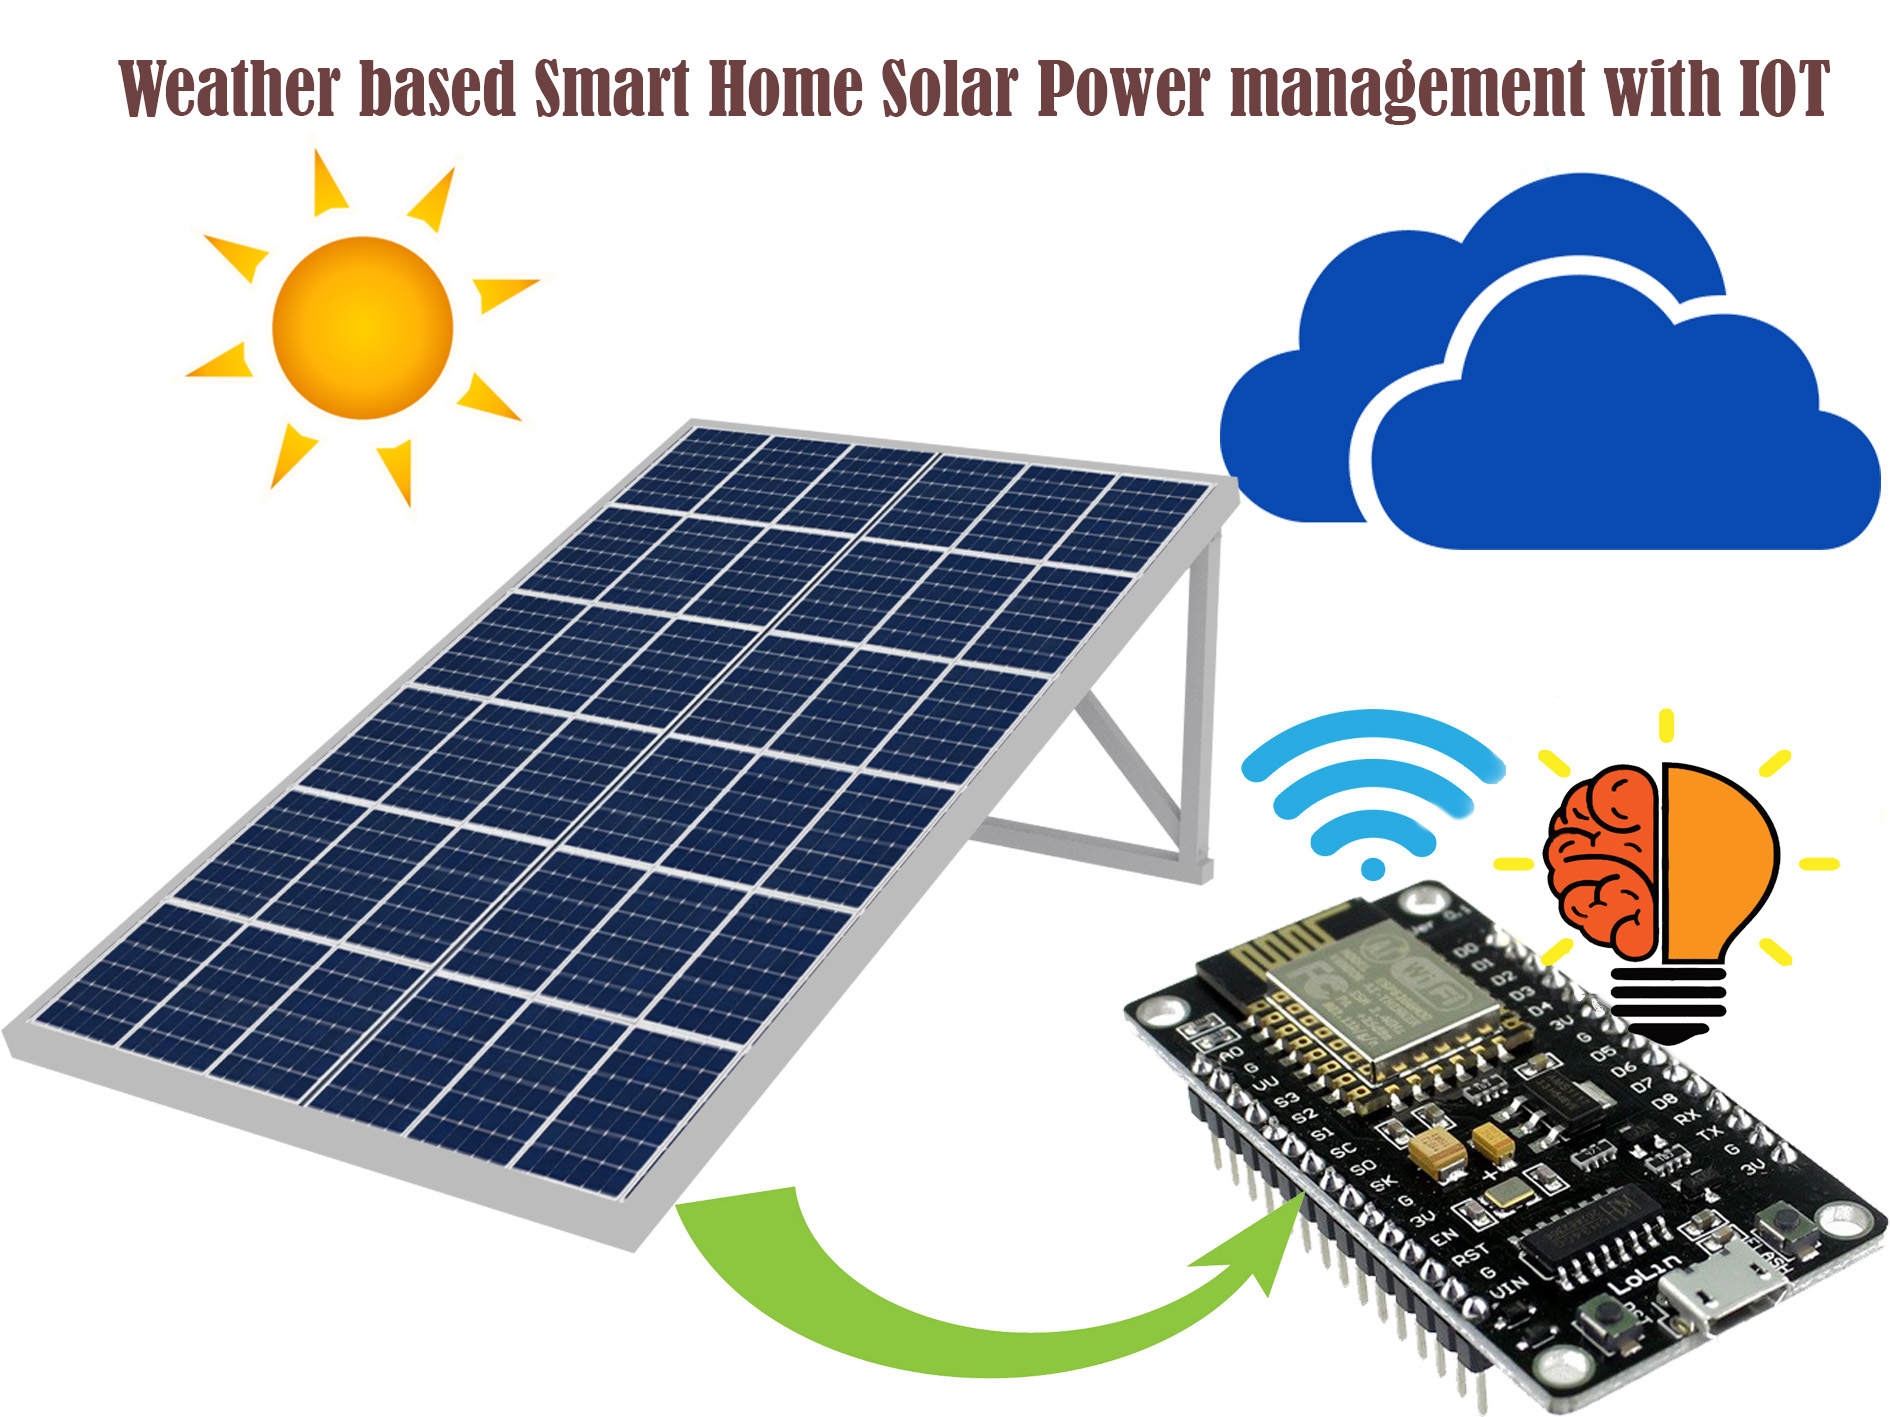 Weather Based Smart Home Solar Power Management With Iot The Ieee Energy Systems Electricity For Your Cells Project Aims To Improve Efficient Distribution Of Daily Details Algorithm Used And Complete Monitoring In